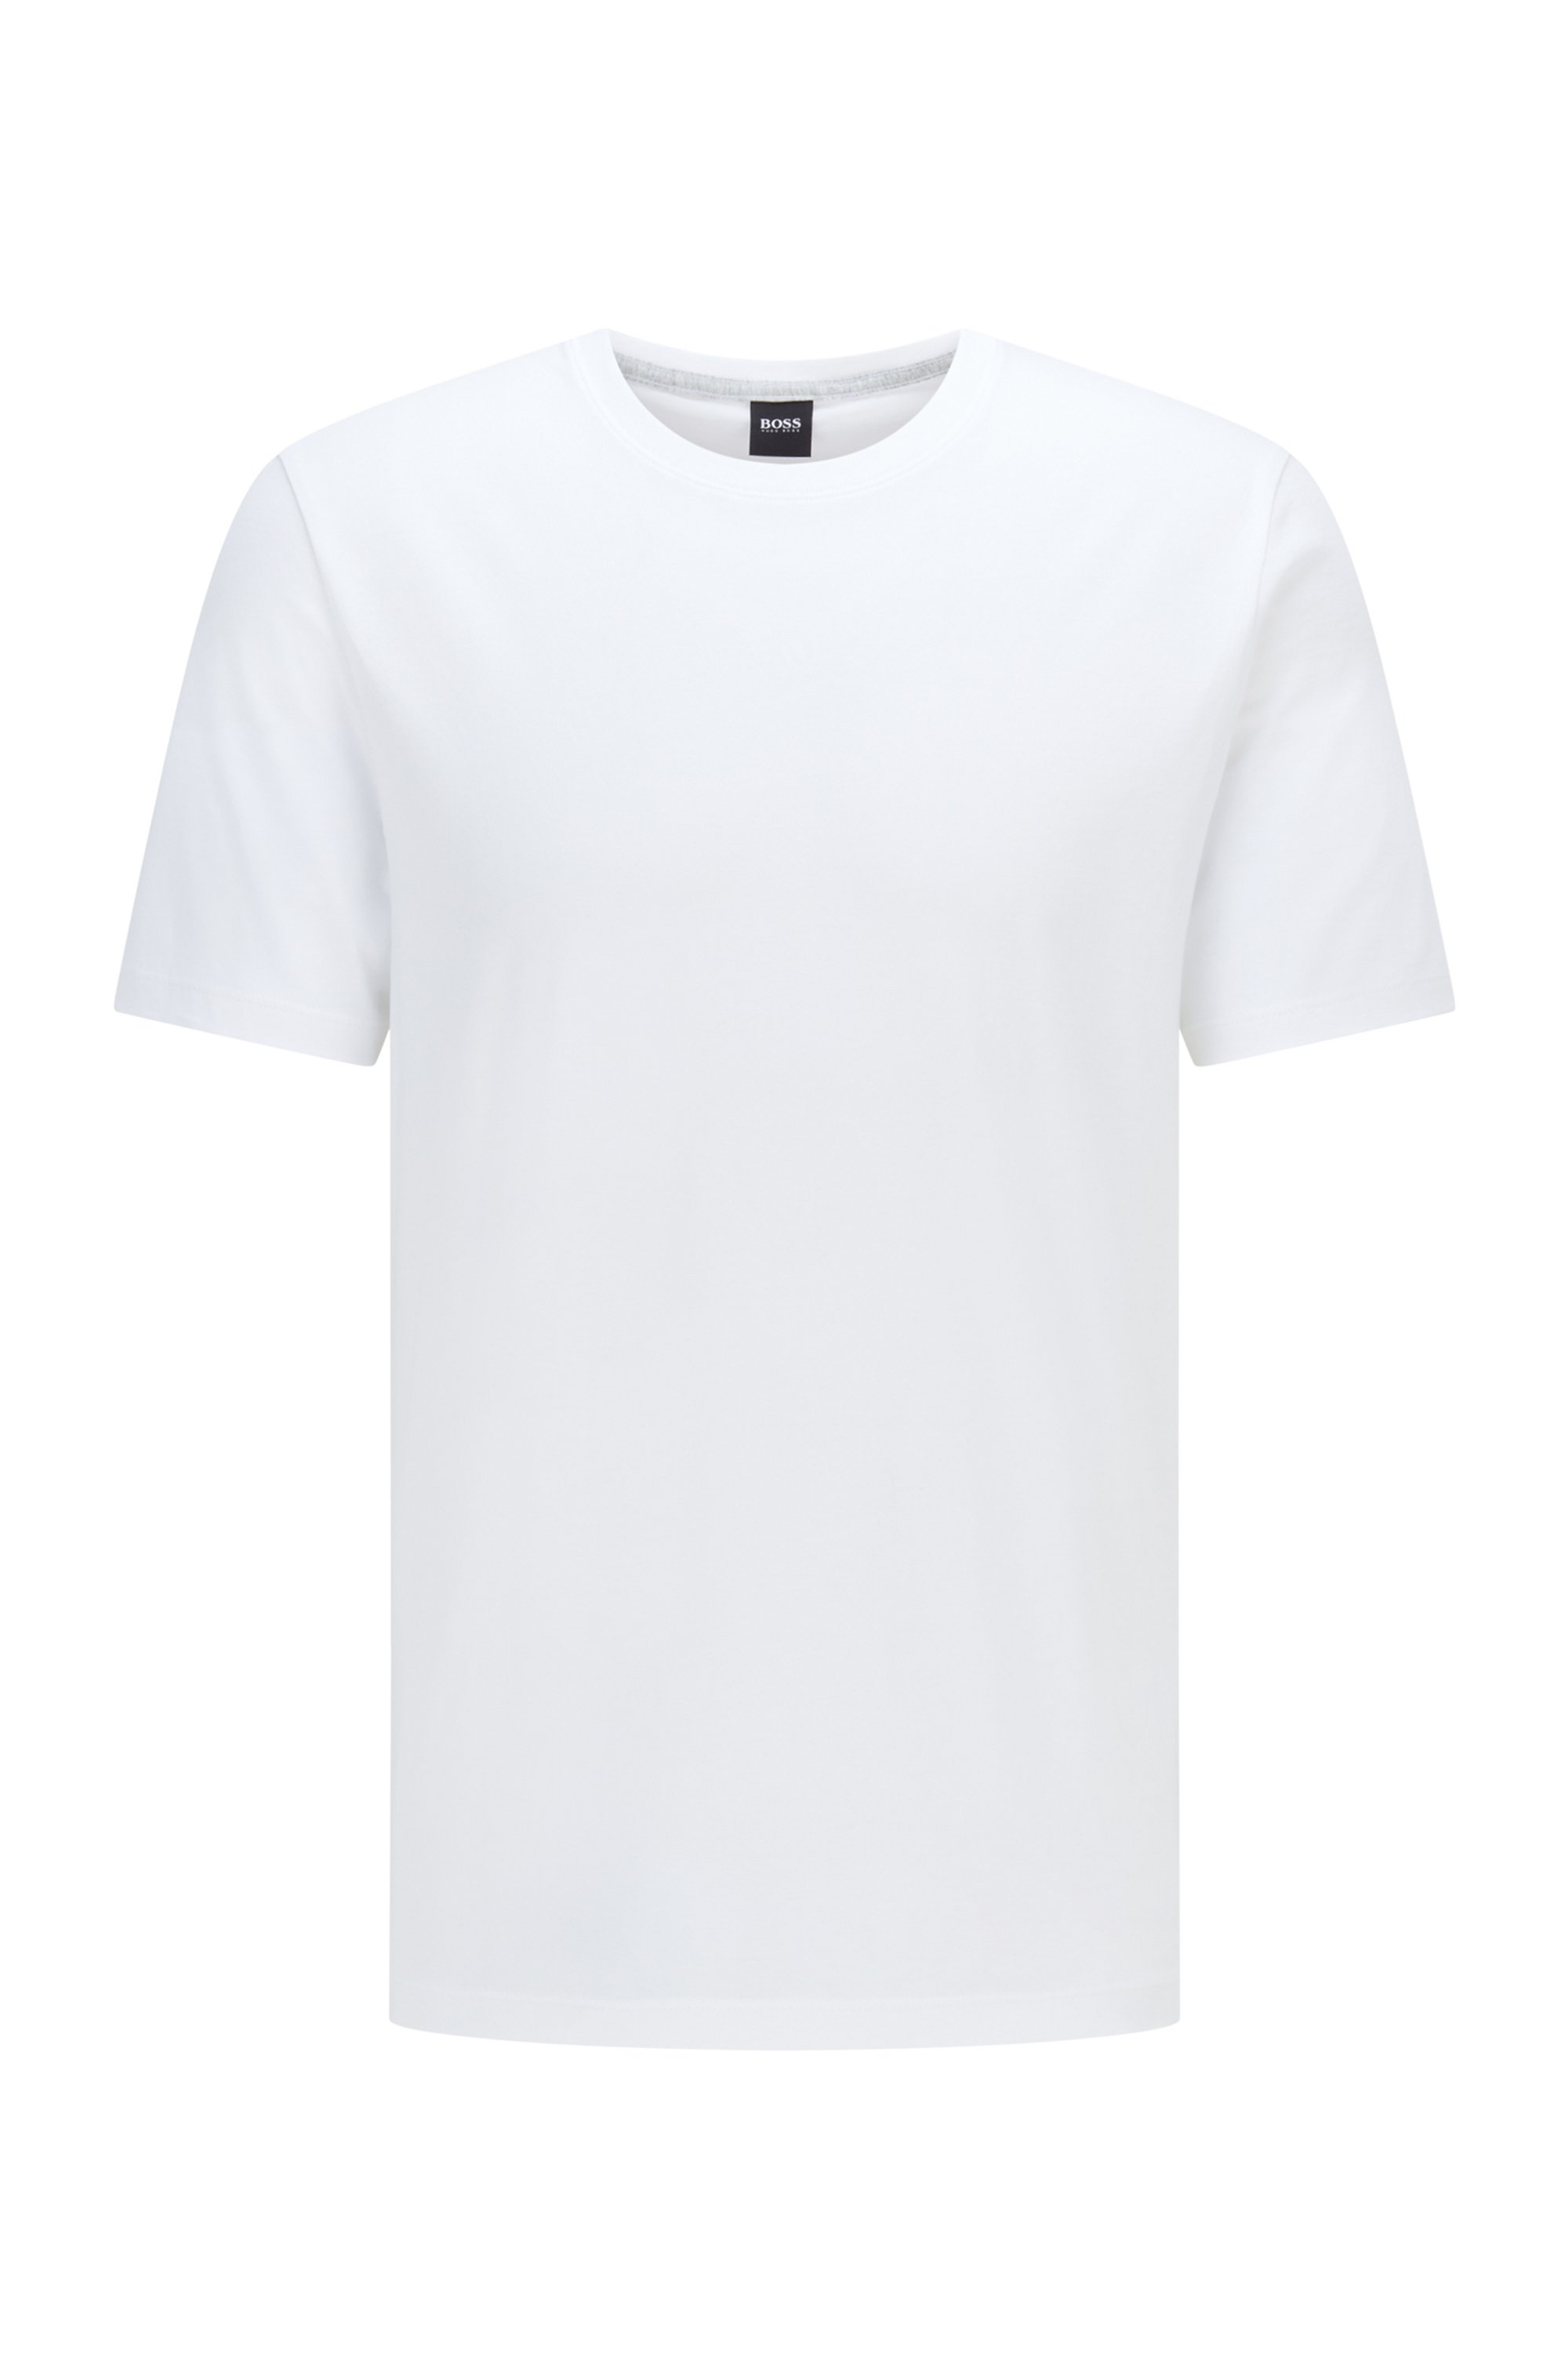 Crew-neck T-shirt in pure cotton with liquid finishing, White